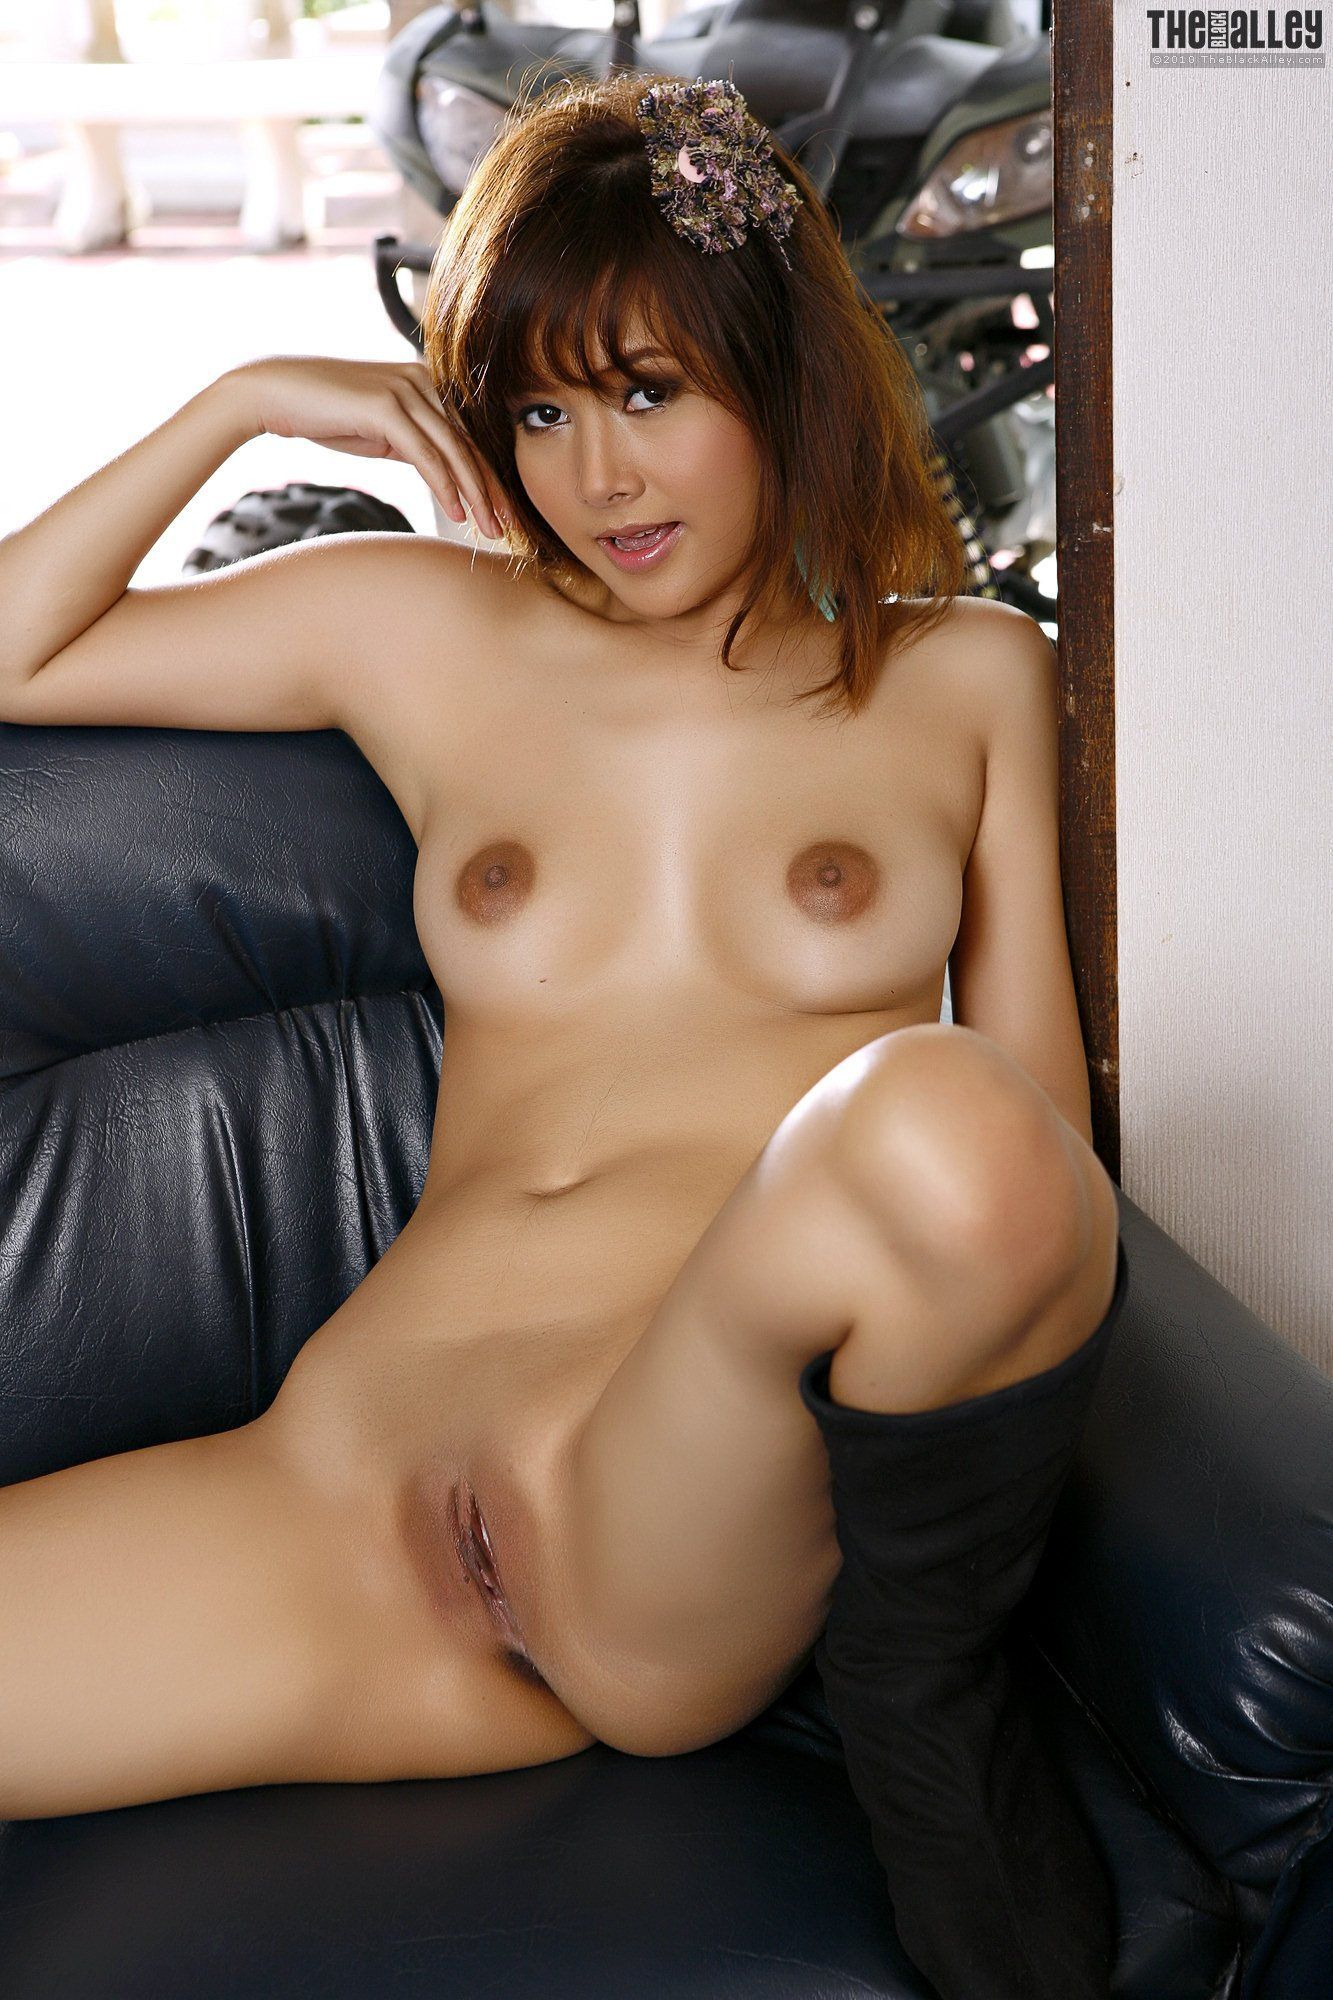 Femdom shaved pussy pic new porn